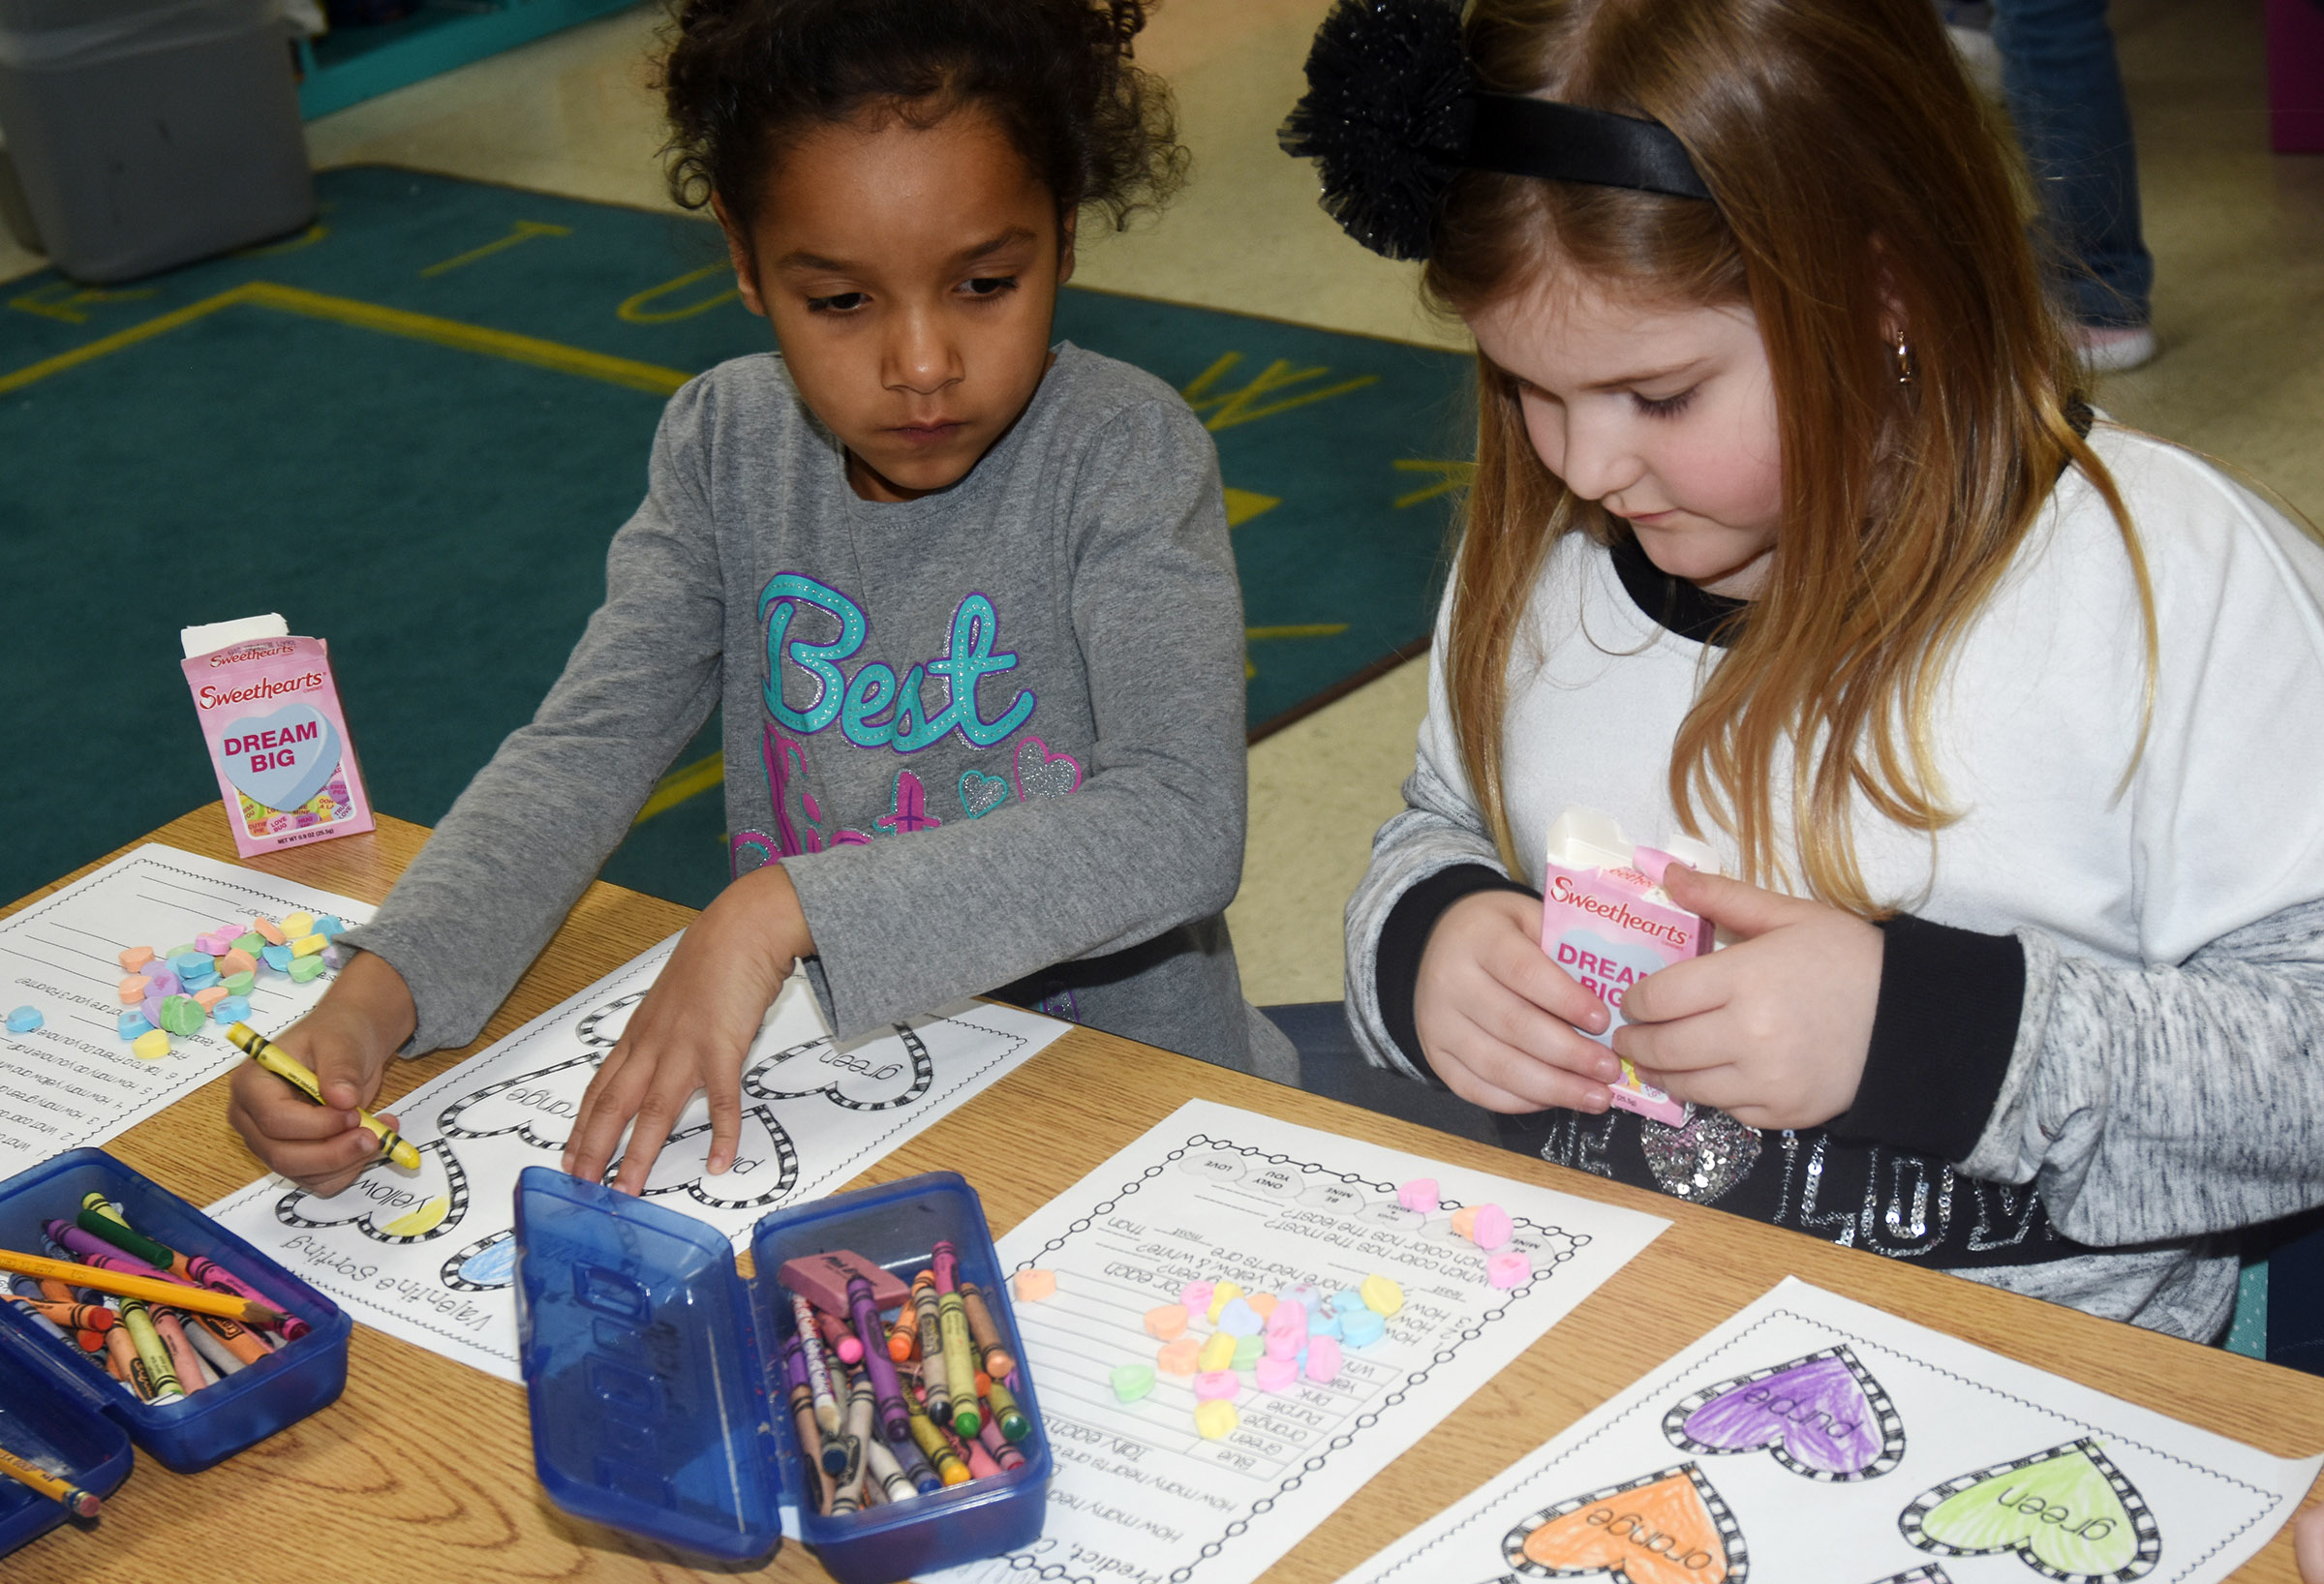 CES first-graders Kylei Thompson, at left, and Aubreigh Knifley sort their hearts.